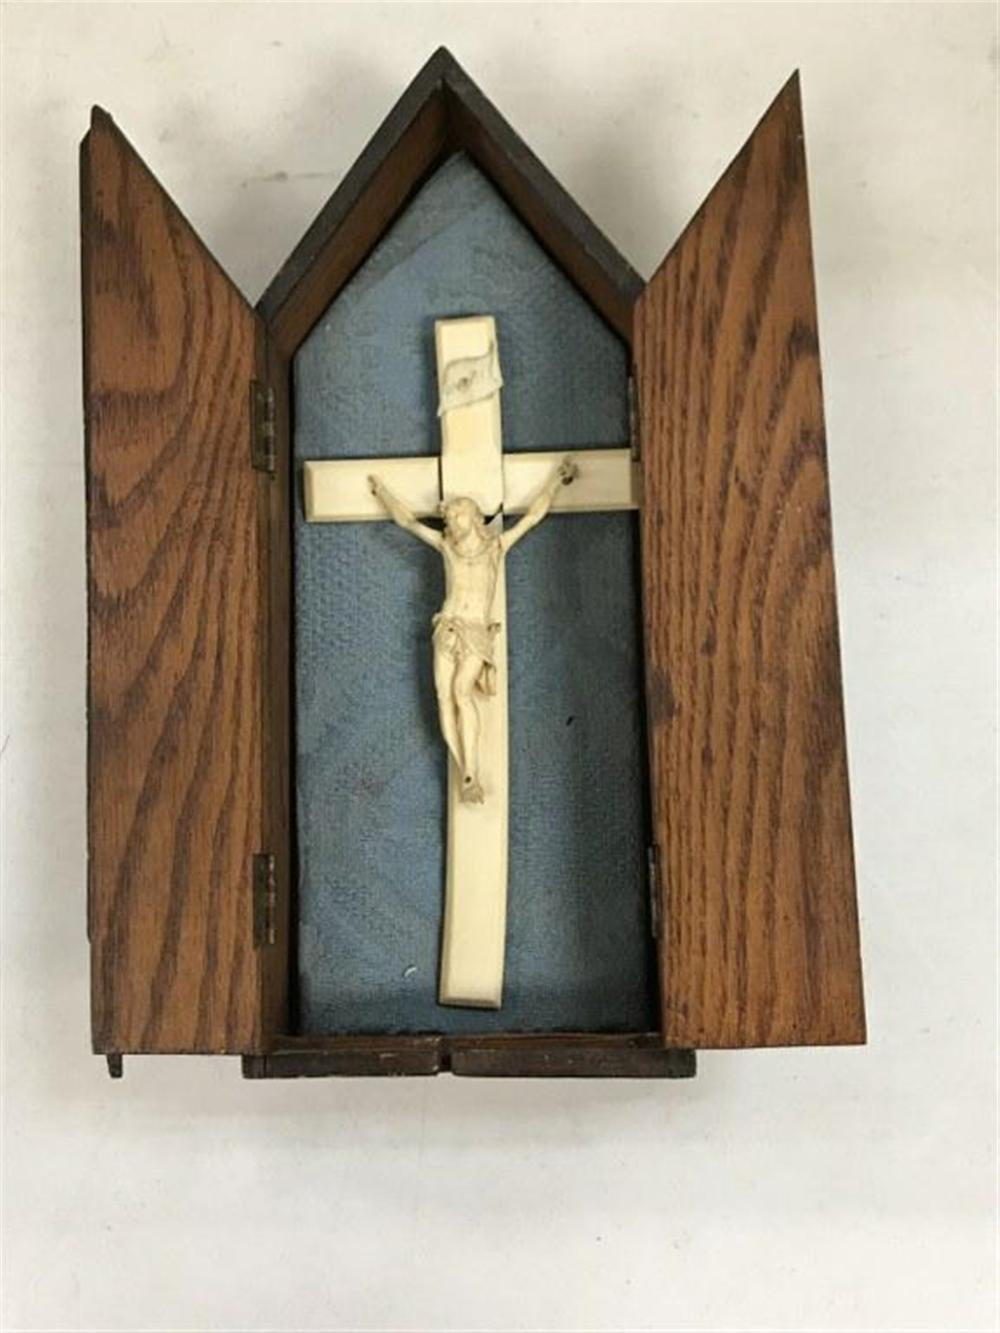 "EARLY CARVED OAK DOUBLE DOOR BOX WITH JESUS AT CROSS, CROSS AND JESUS IN 4 PARTS AS PICTURED, BOX MEASURES 12 1/2"" TALL AND 5"" ACROSS.  FROM N Y STATE MONESTARY."